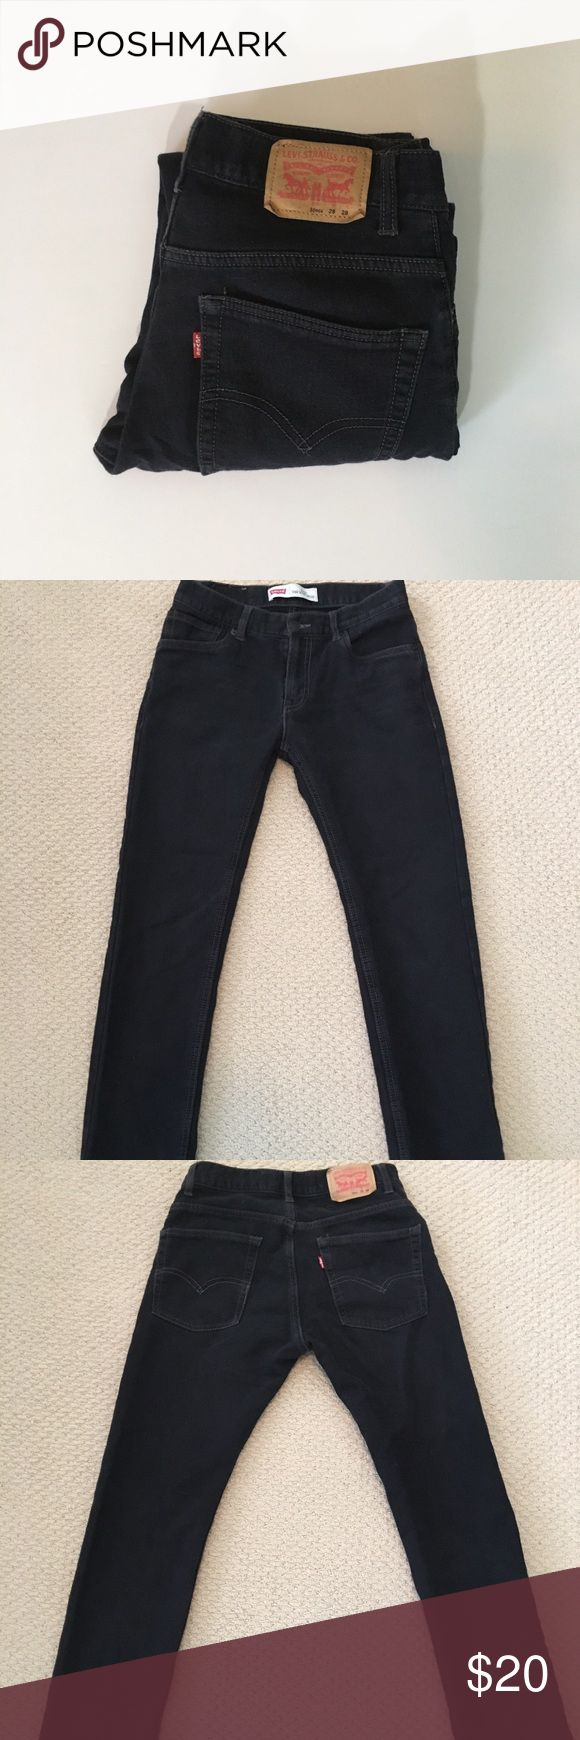 EUC Levi's 511 'The Knit' Jeans 28x28 These men's Levi's 511 Slim Jeans are in excellent condition. They're knit denim making them super comfortable and stretchy. The faded black color is perfect for everyday wear! Size 28x28 Levi's Jeans Slim